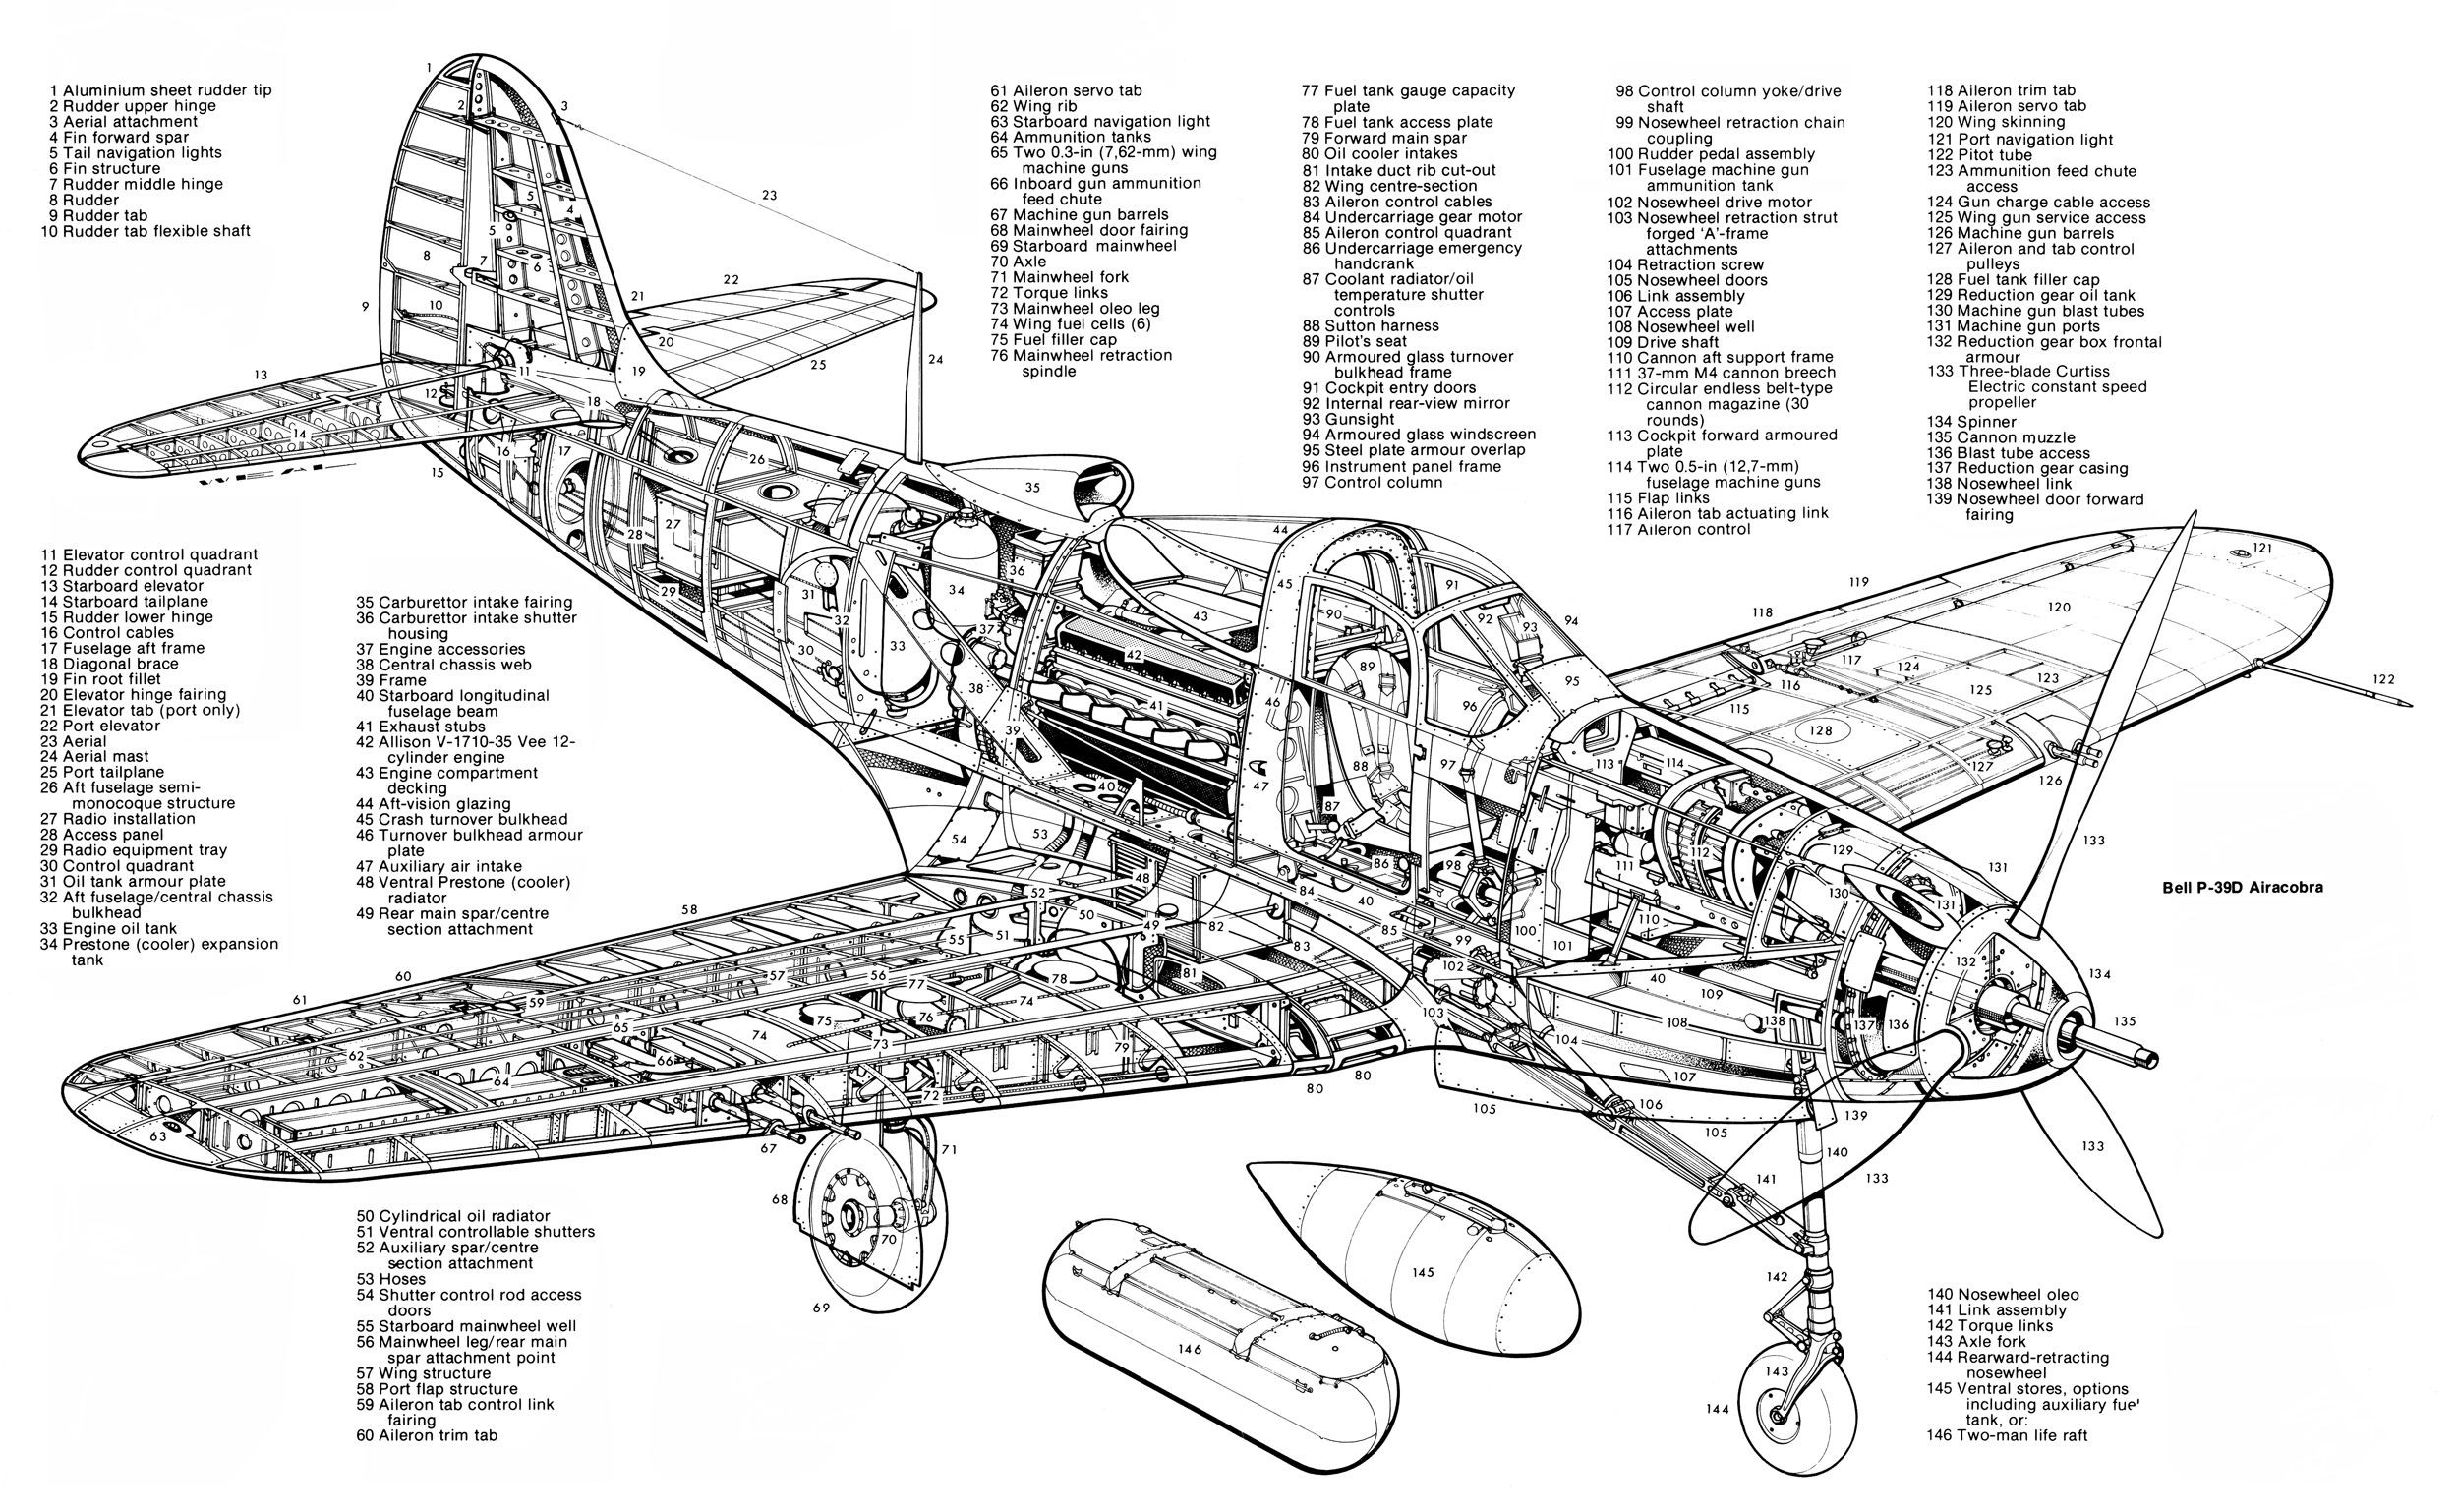 Plane Engine Diagram Bell39d1 2500—1741 Diagrams and Cutaways Of Plane Engine Diagram